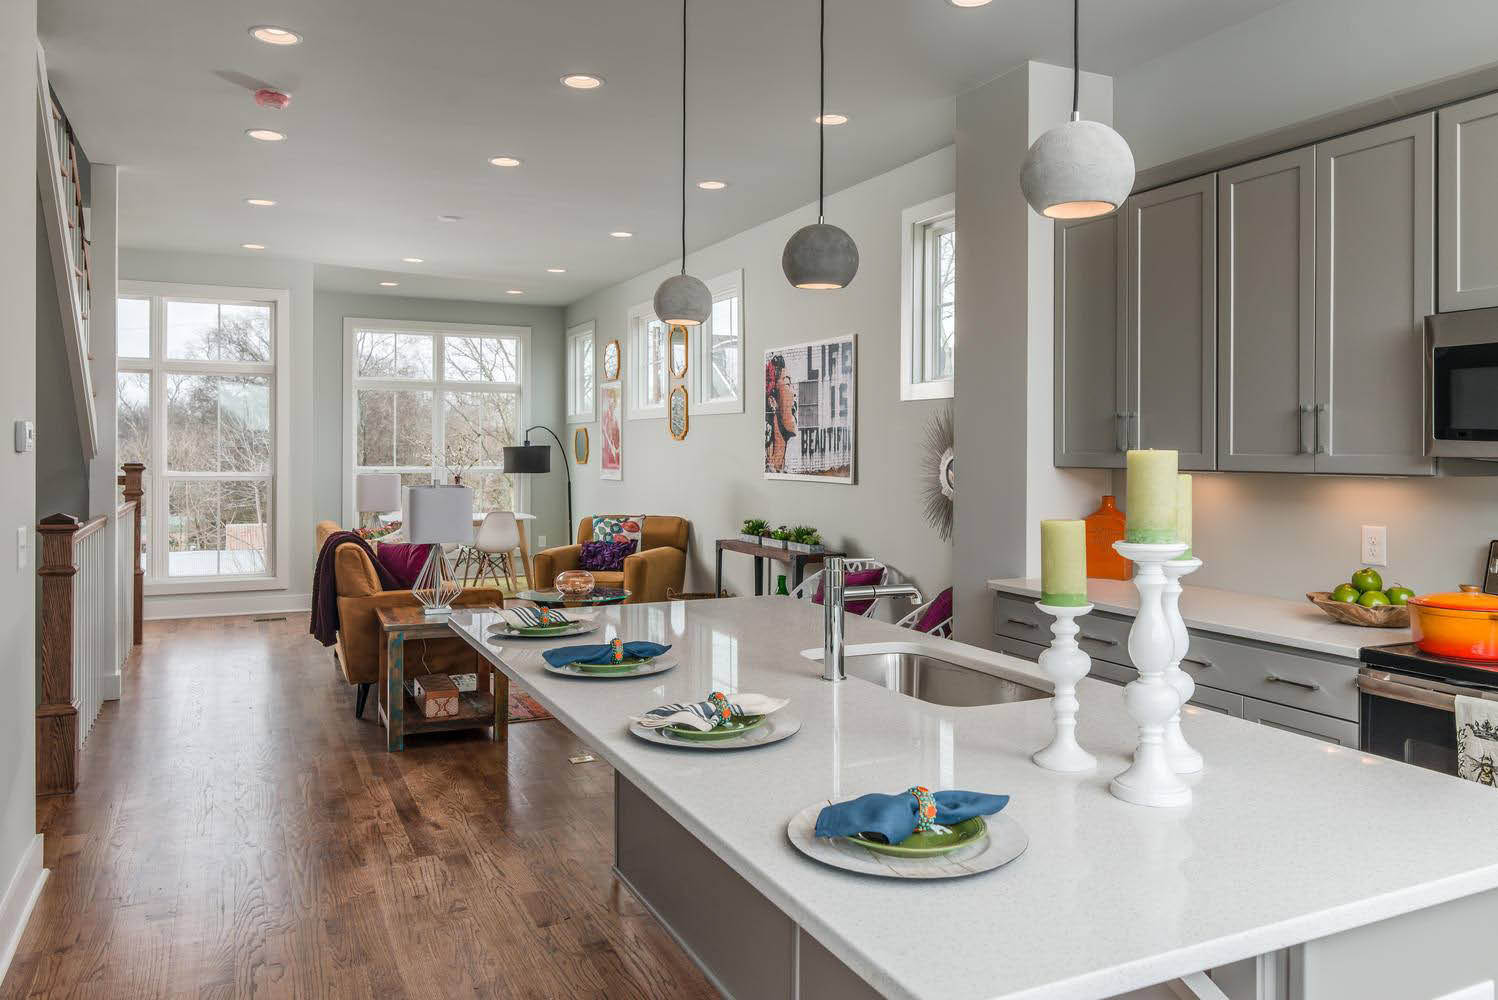 Homes for sale near Brentwood